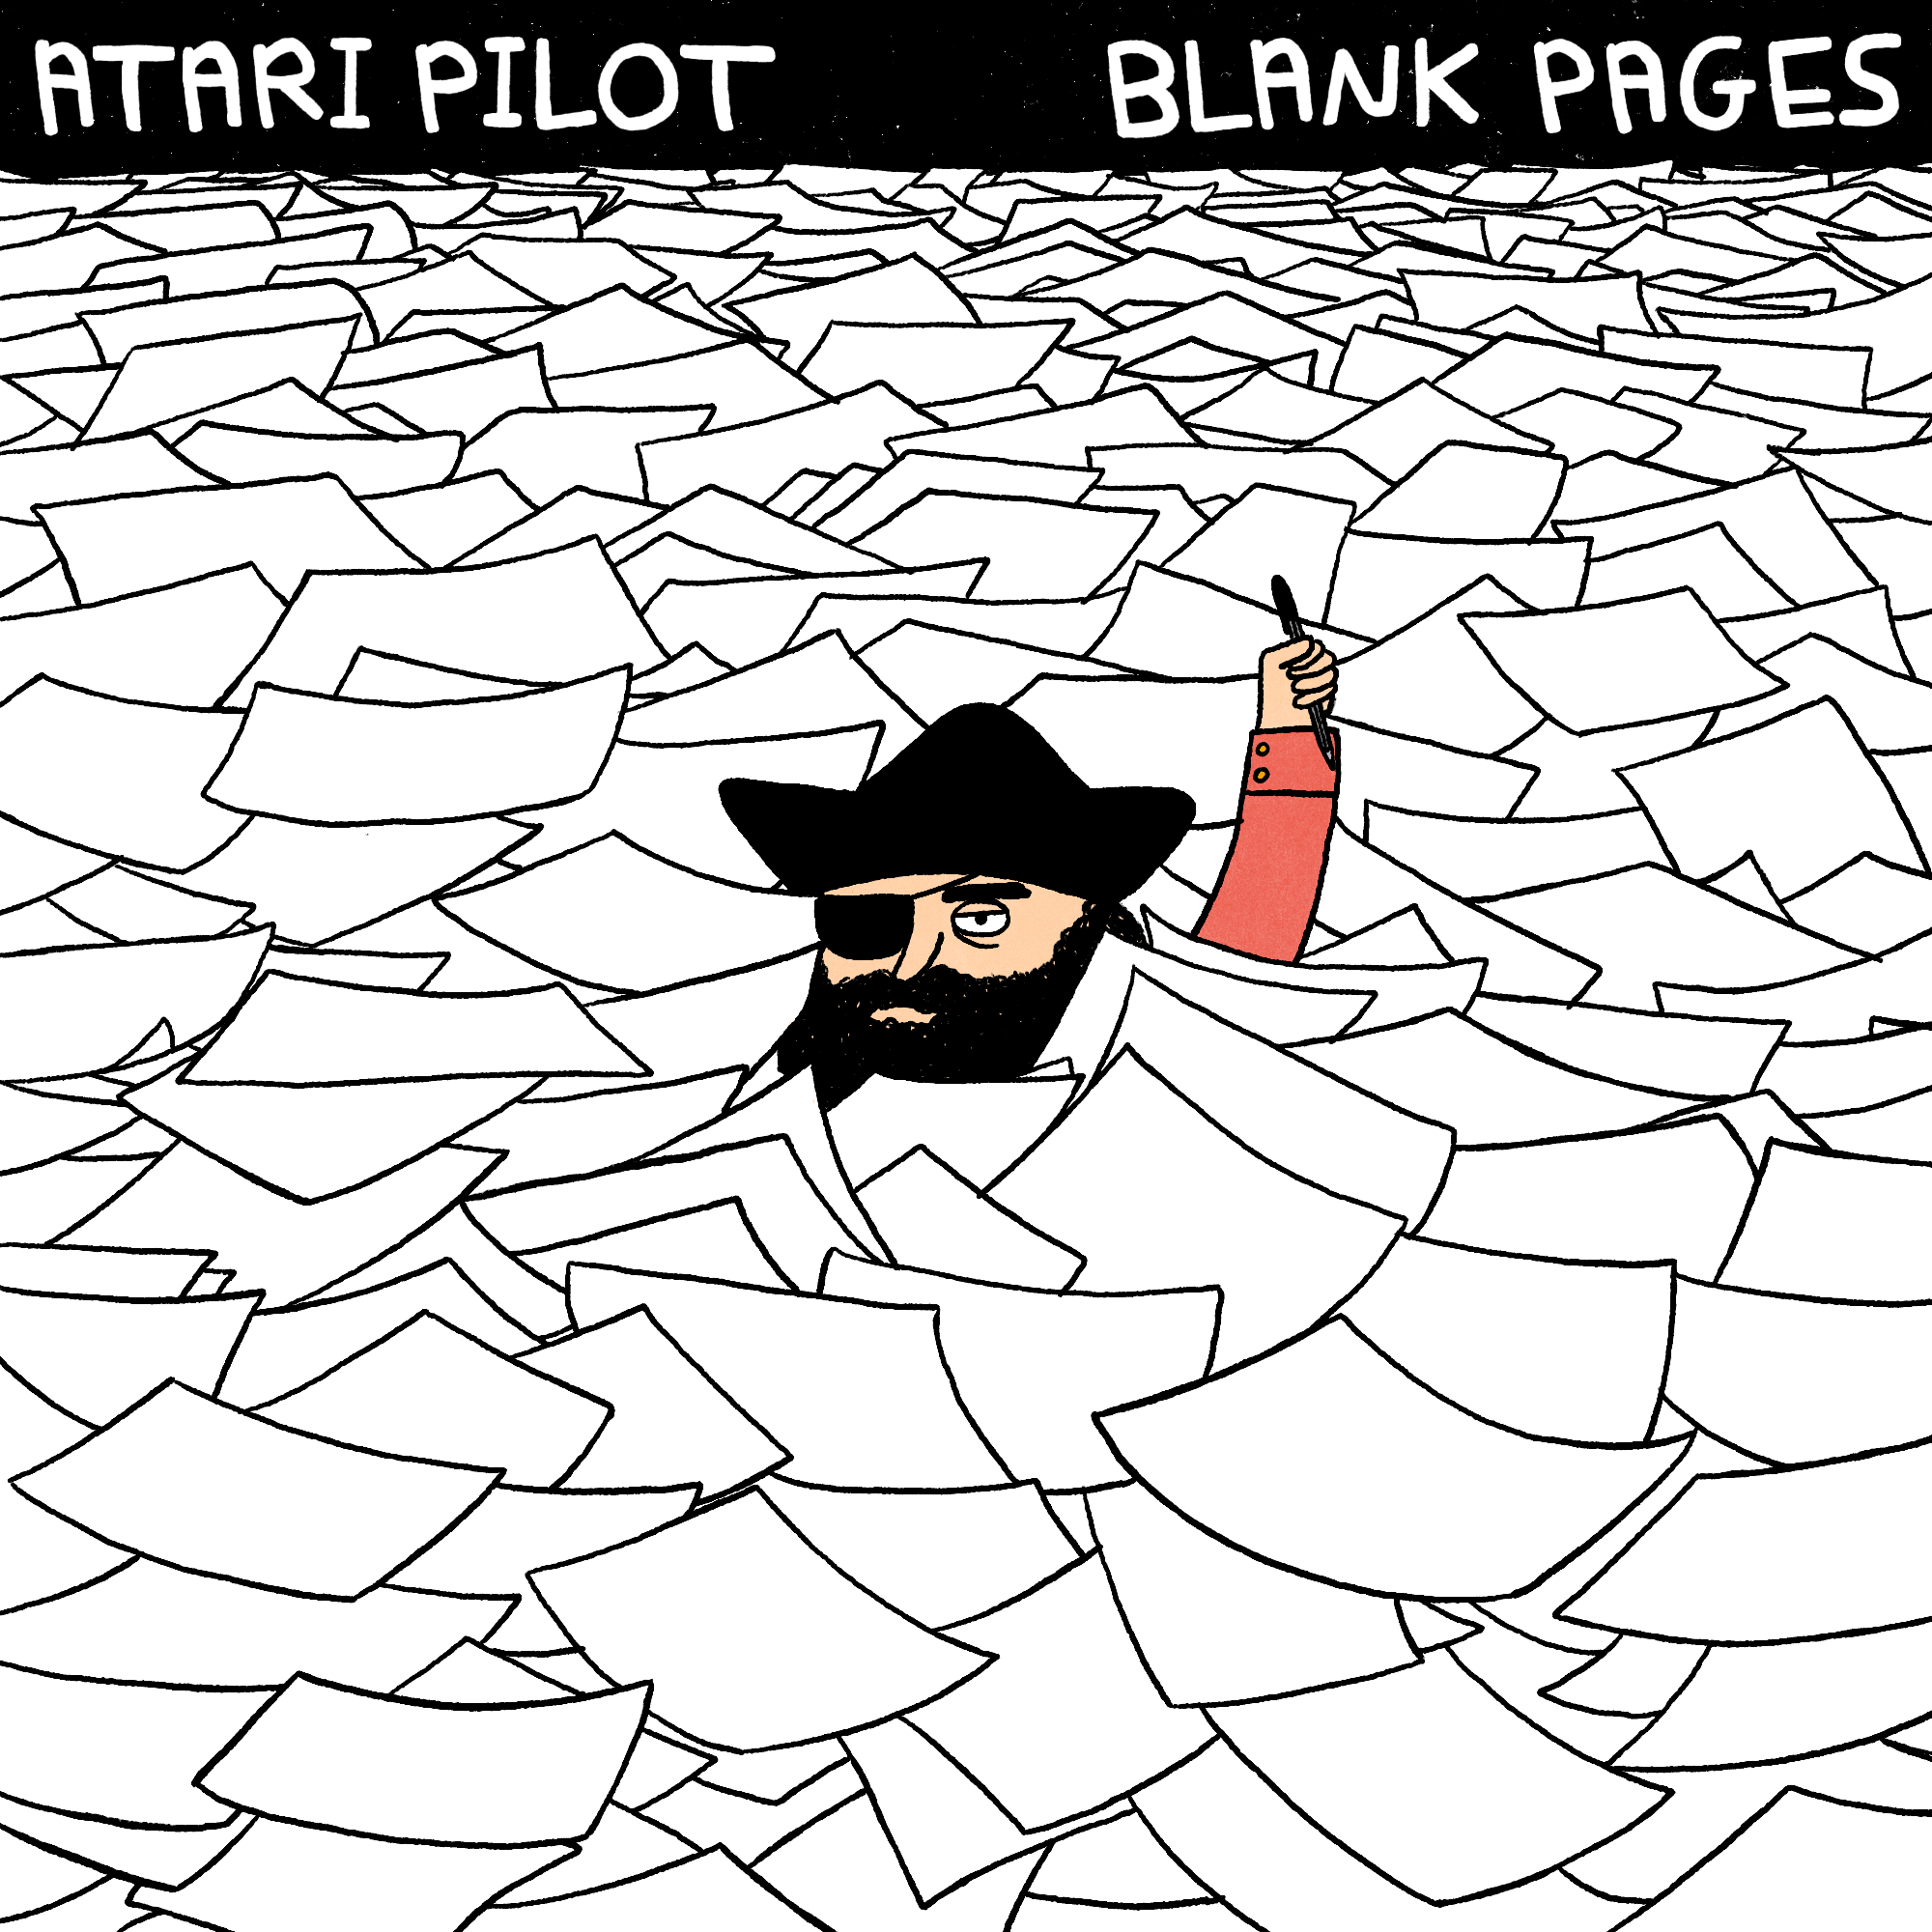 Blank Pages of an Atari Pilot